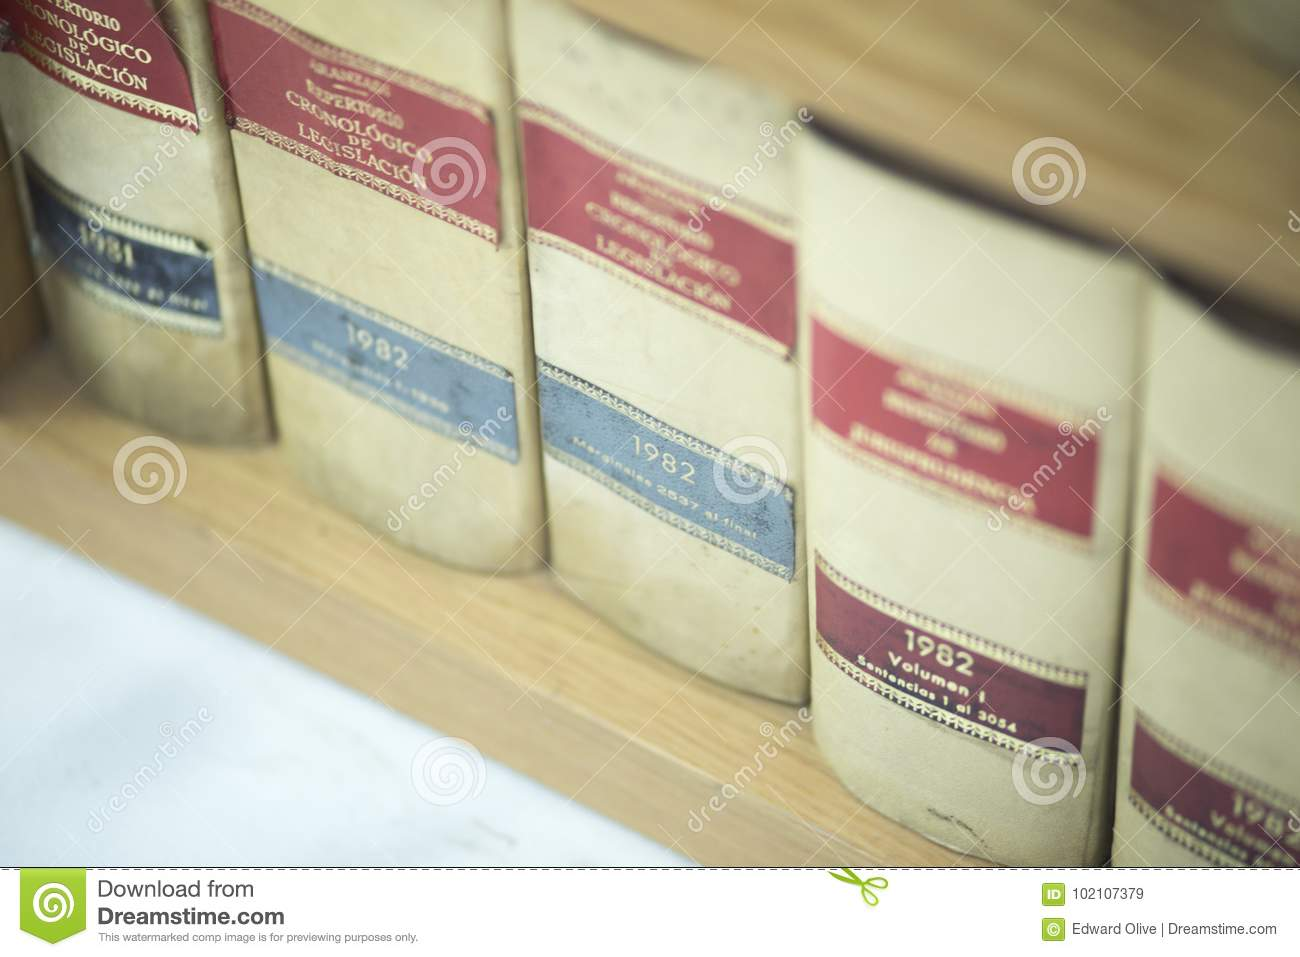 Law Firm Legal Books